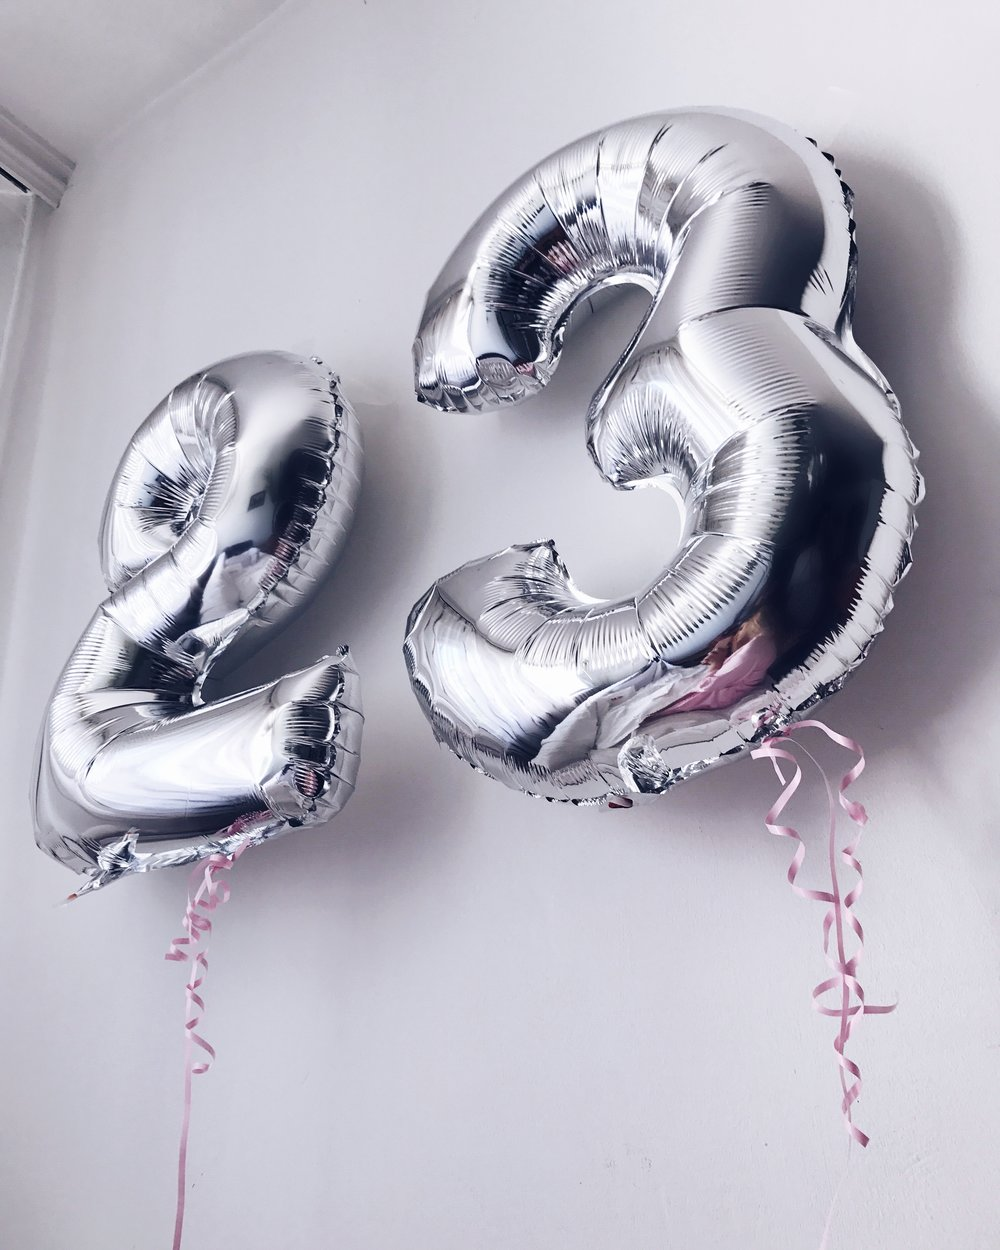 birthday present presents gift gifts bday girl blog blogger balloon balloons 23rd birthday fashion style clothes